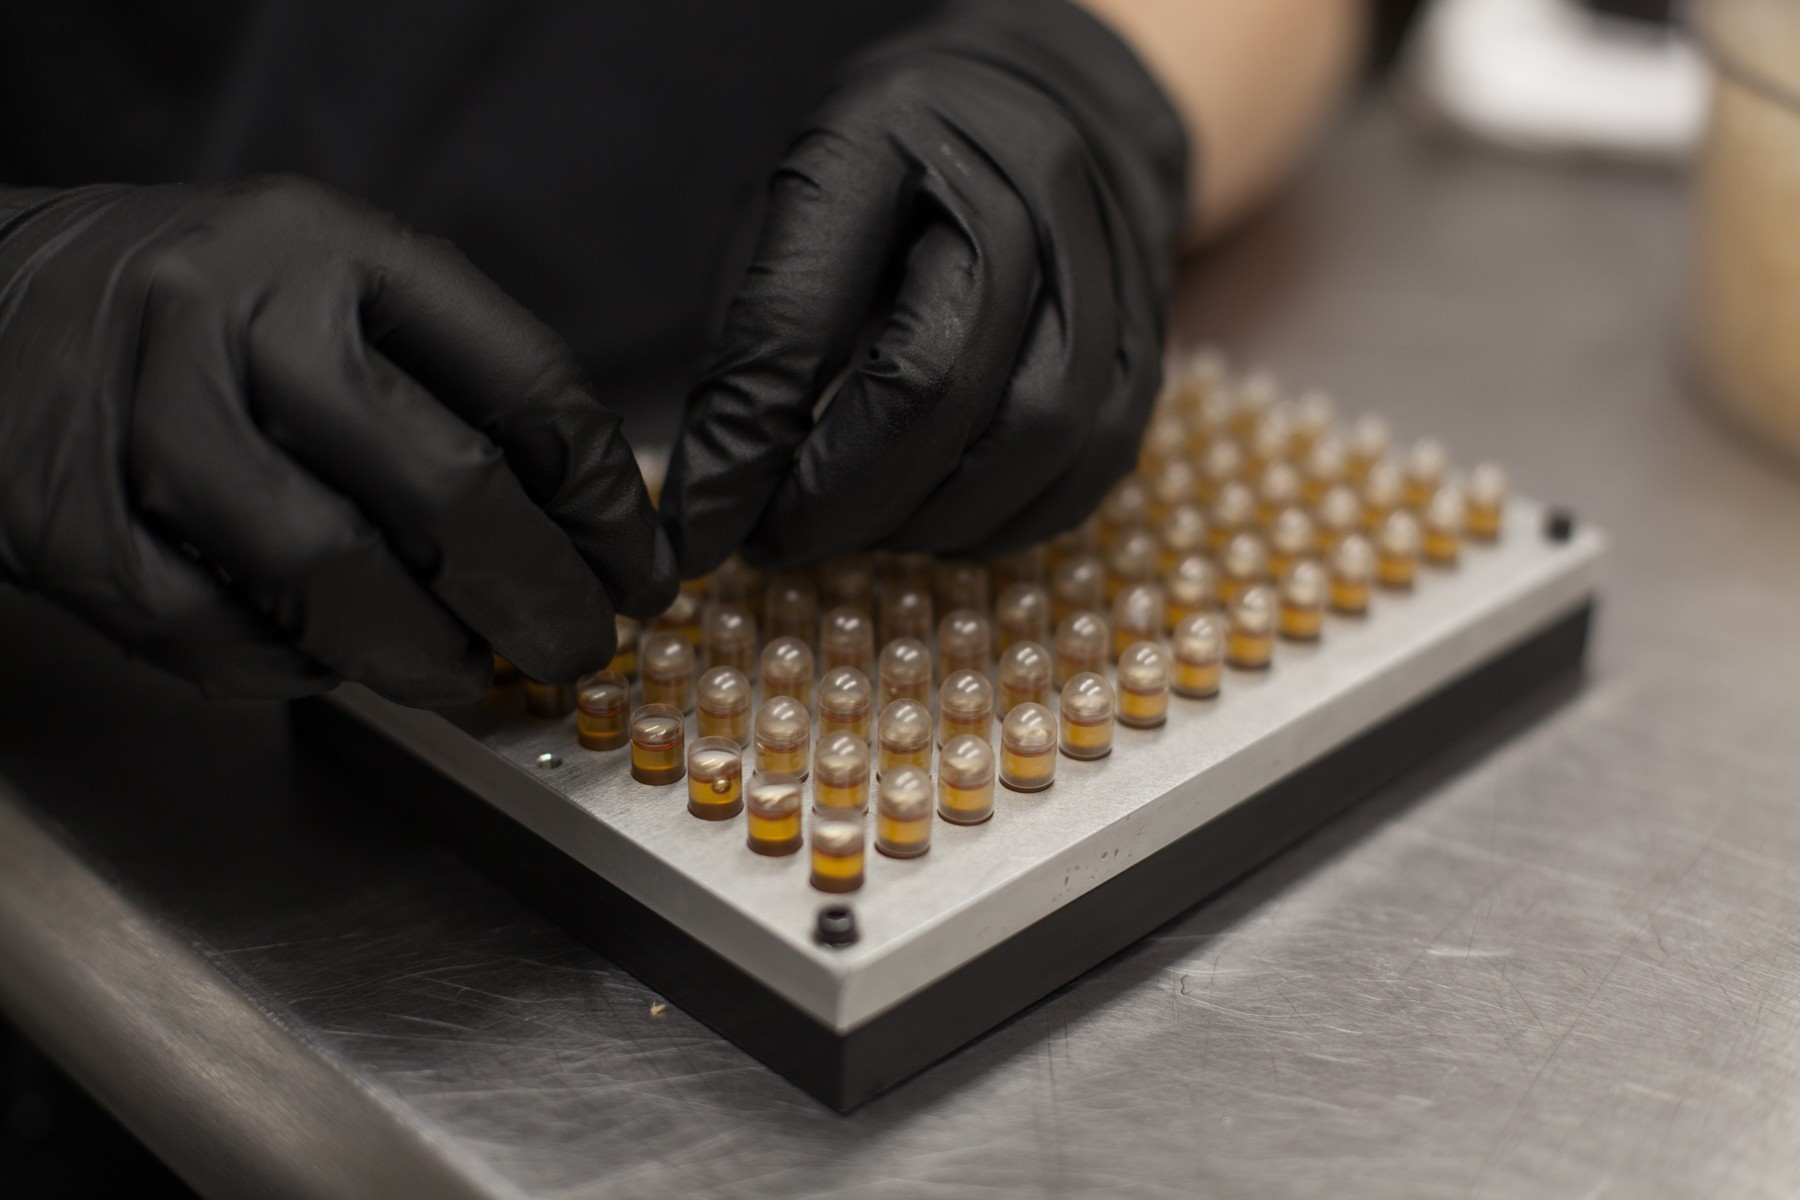 A lab tech closes CBD capsules after they are filled.